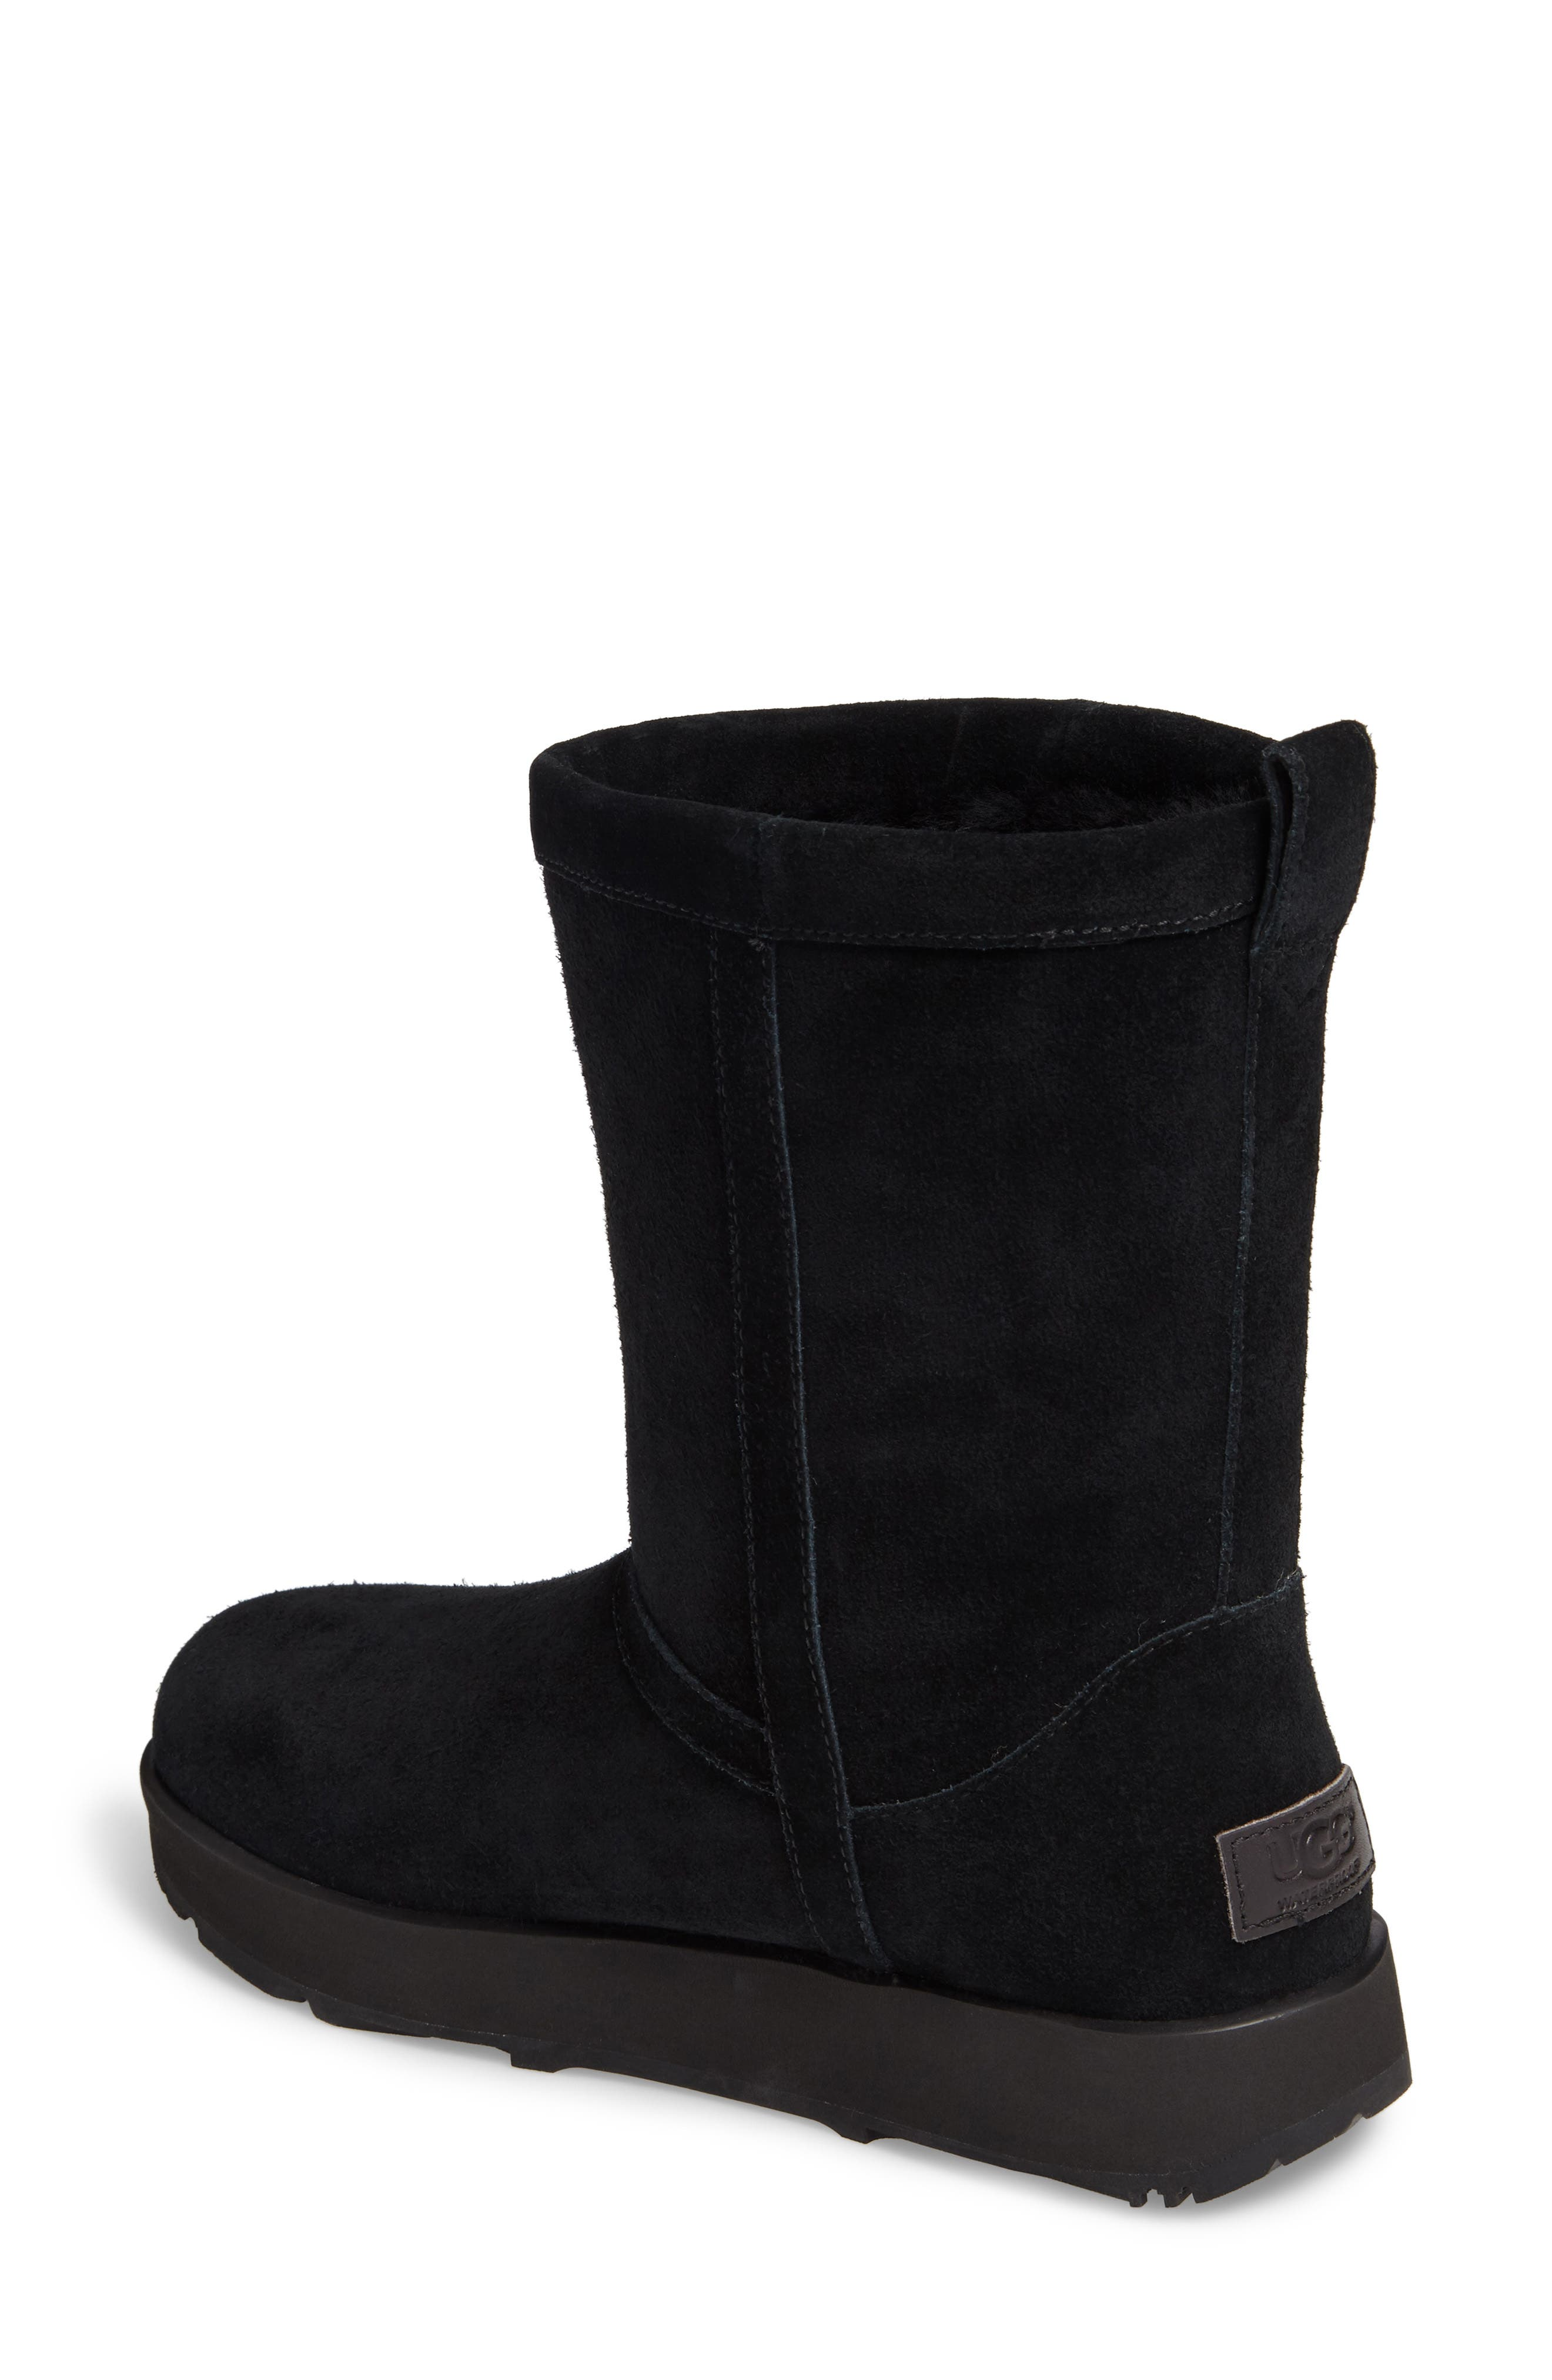 UGG<SUP>®</SUP>, Classic Short Waterproof Boot, Alternate thumbnail 2, color, BLACK SUEDE